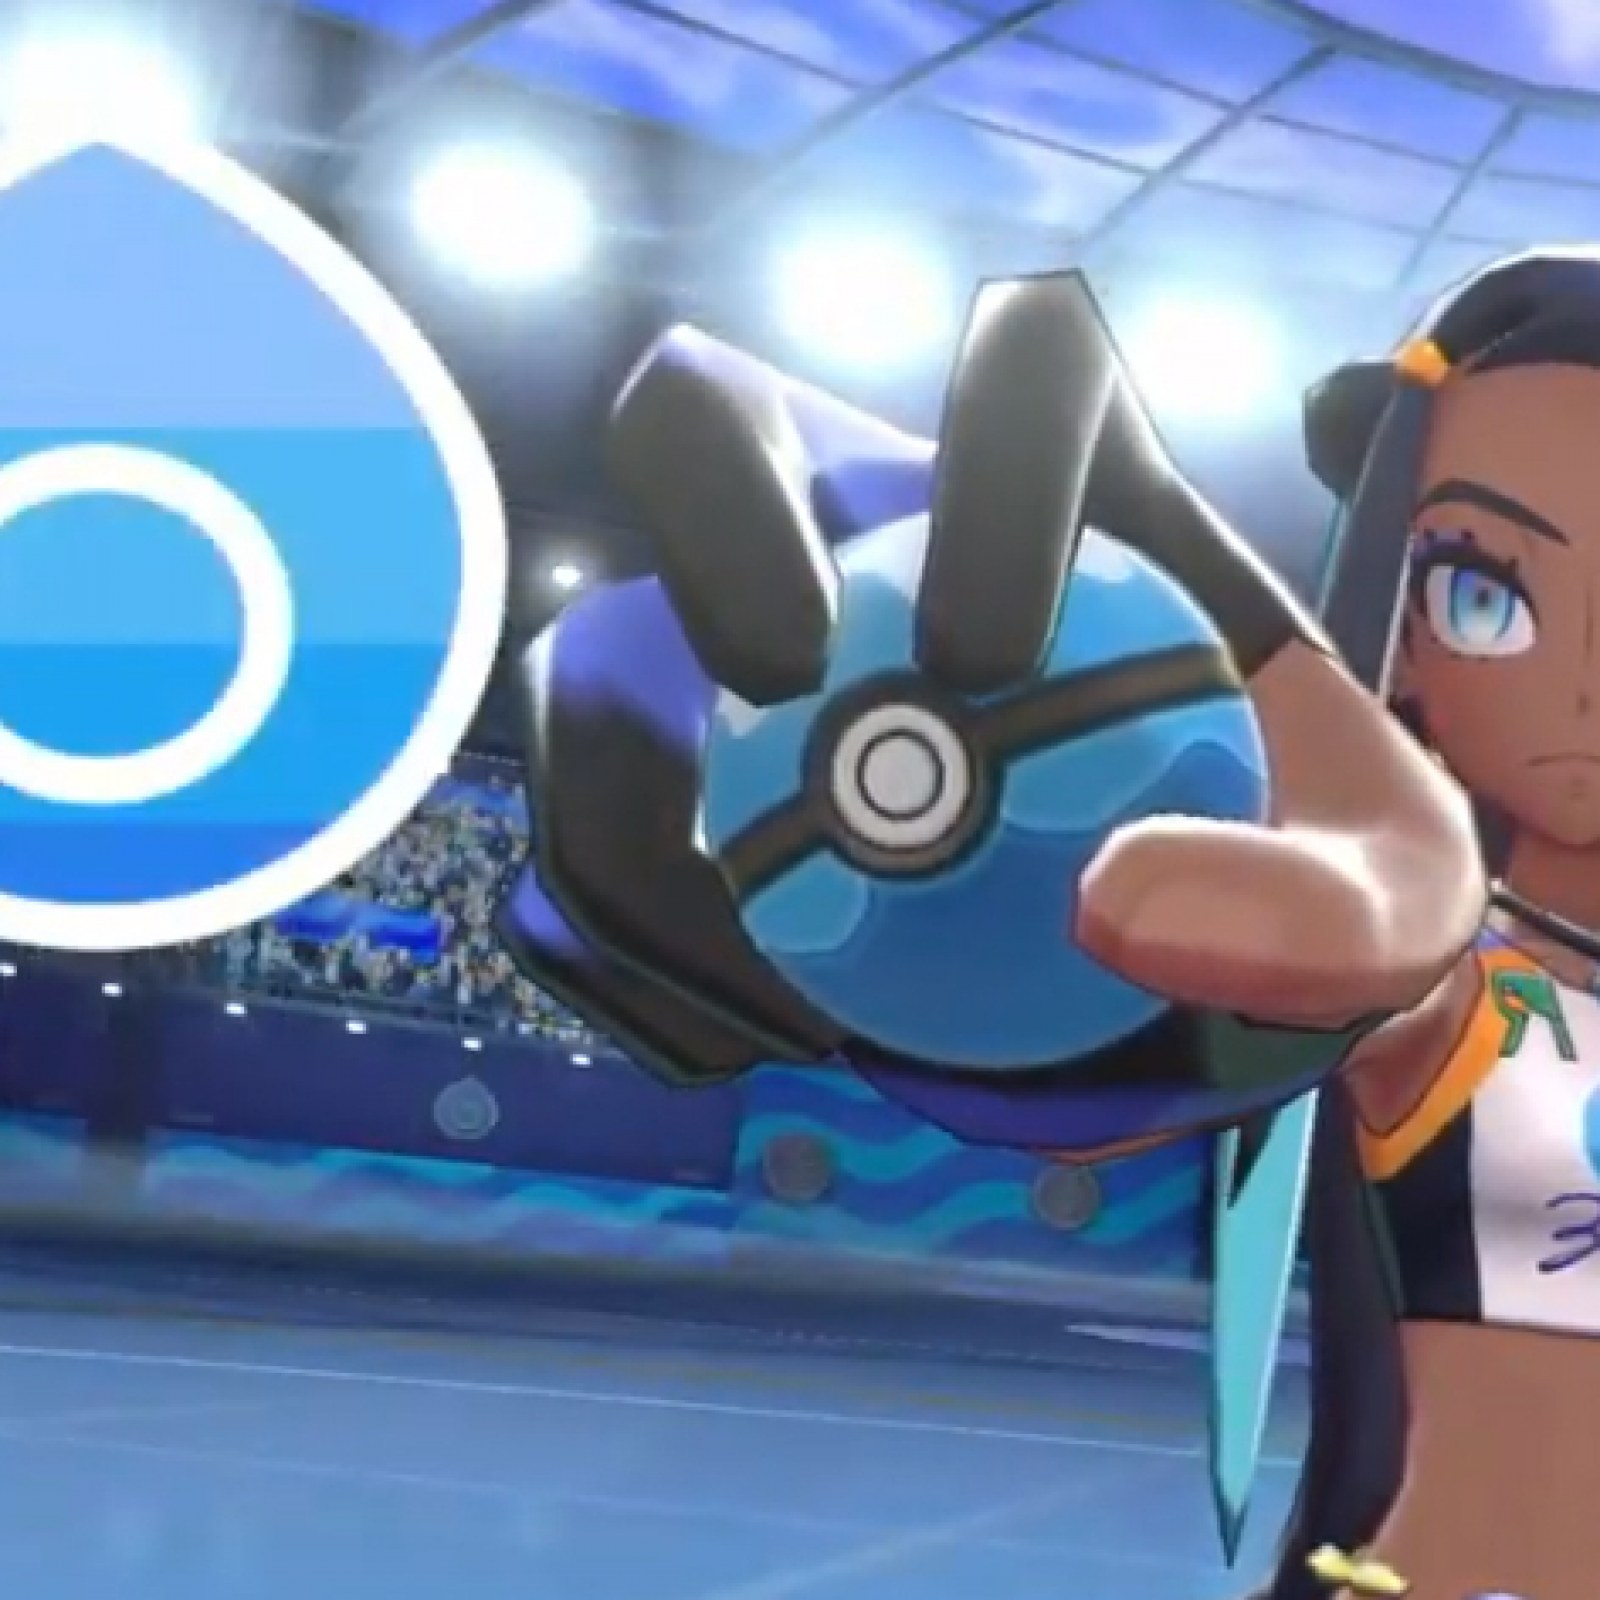 New Pokemon Sword And Shield Gym Leader And Pokeball Plus Details